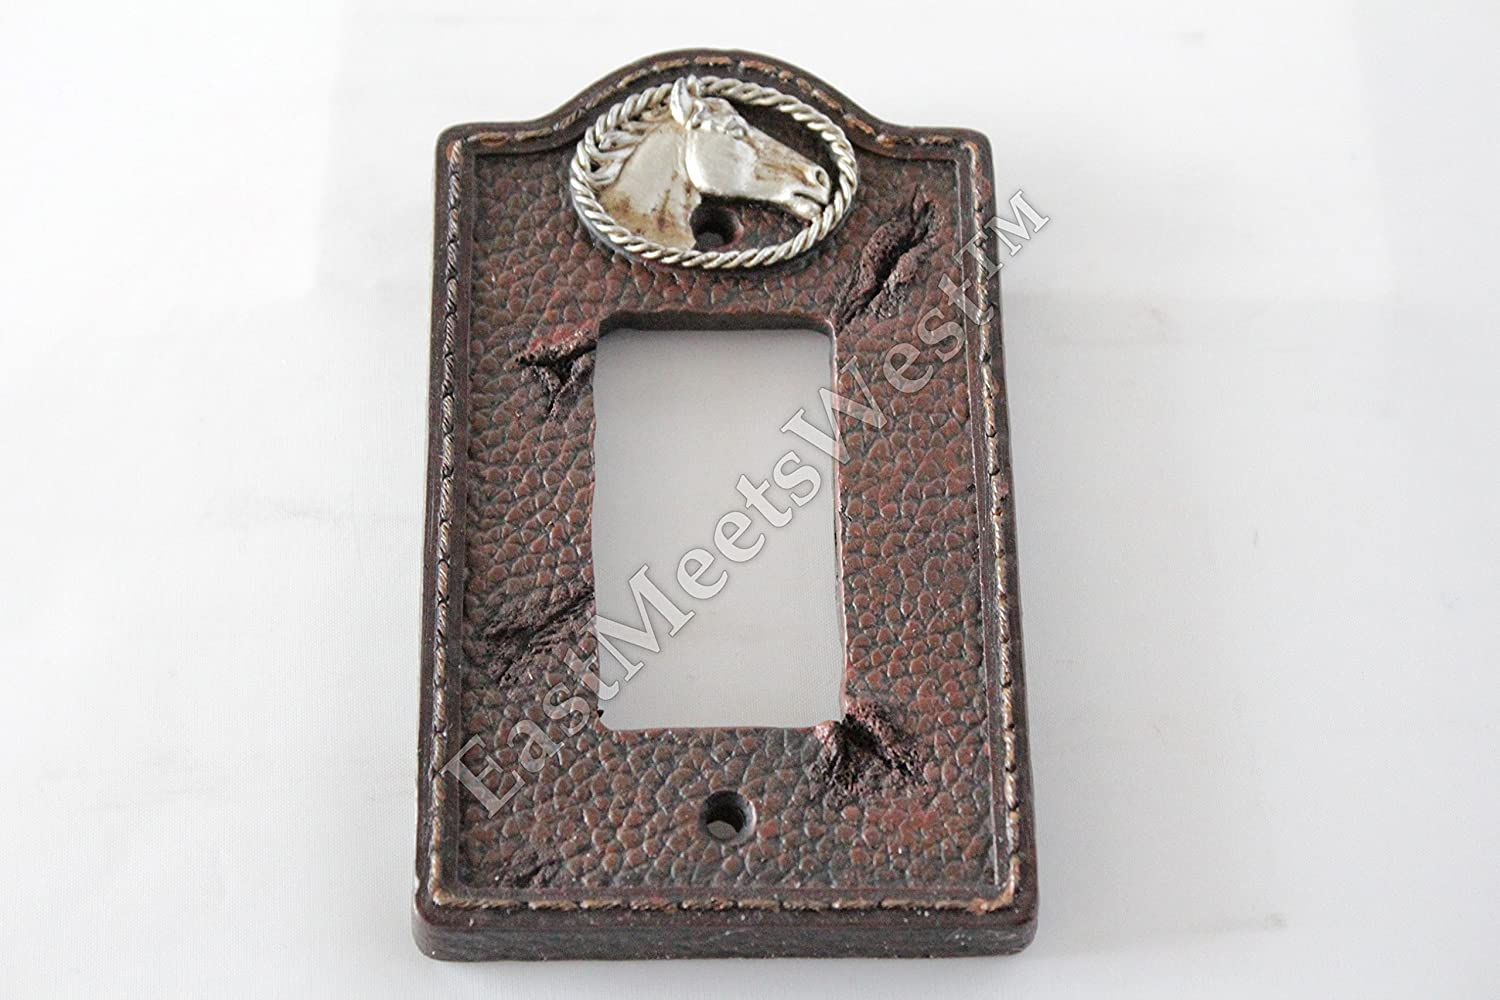 Western Running Horses Switch Rocker Plate Outlet Covers Wood Look Rope Edge